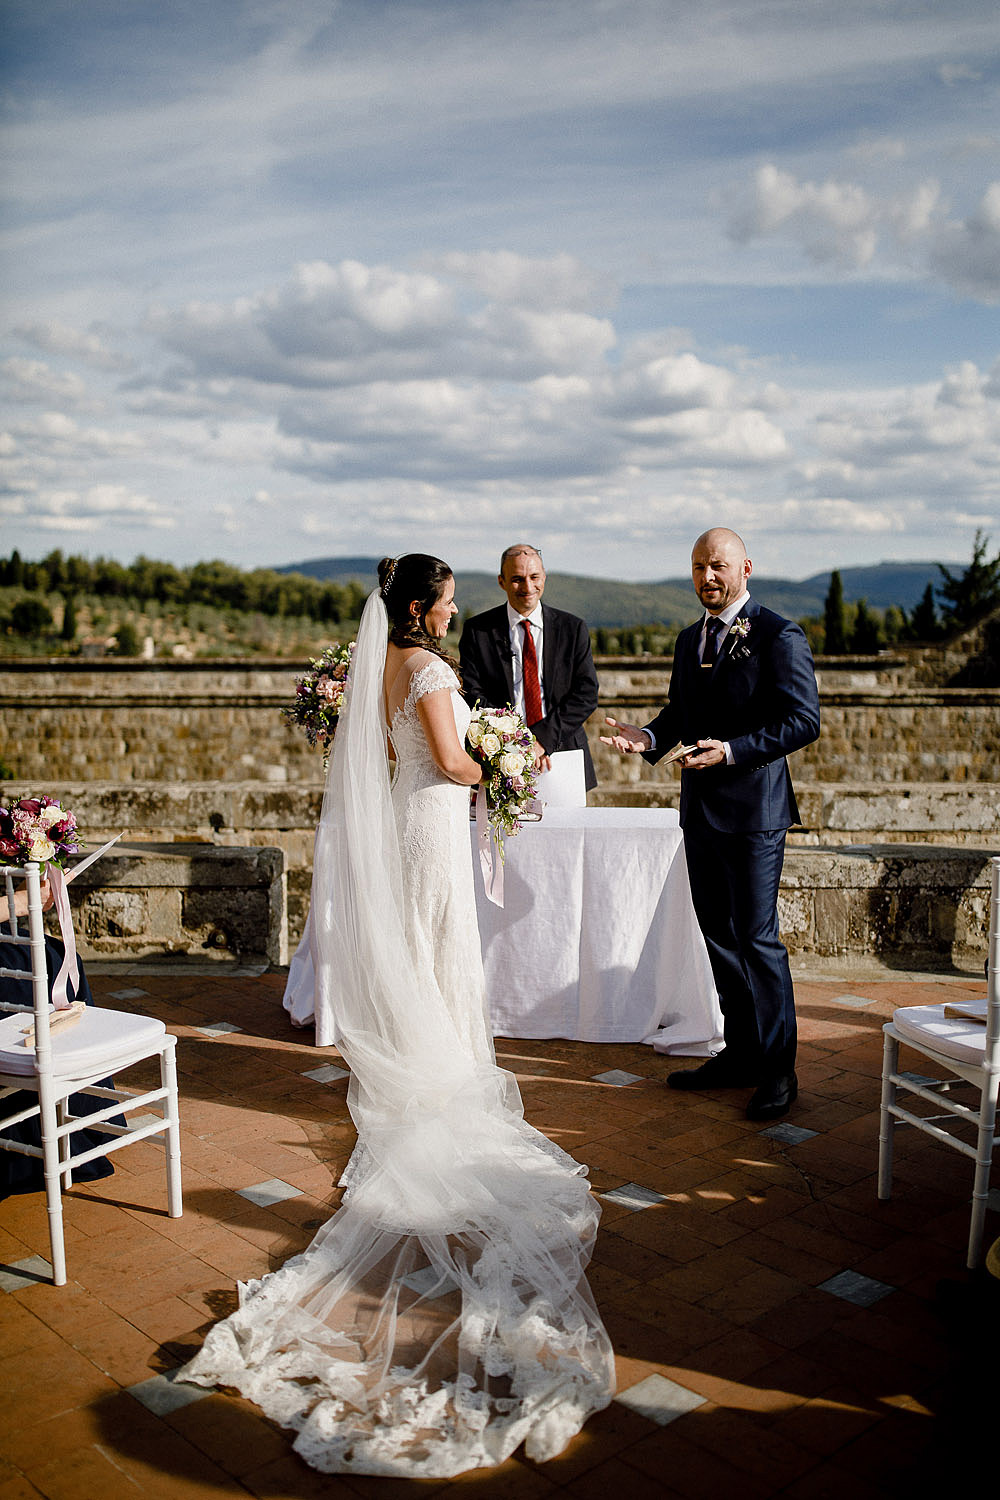 Stylish Wedding at Castello Vincigliata | Florence Italy :: Luxury wedding photography - 27